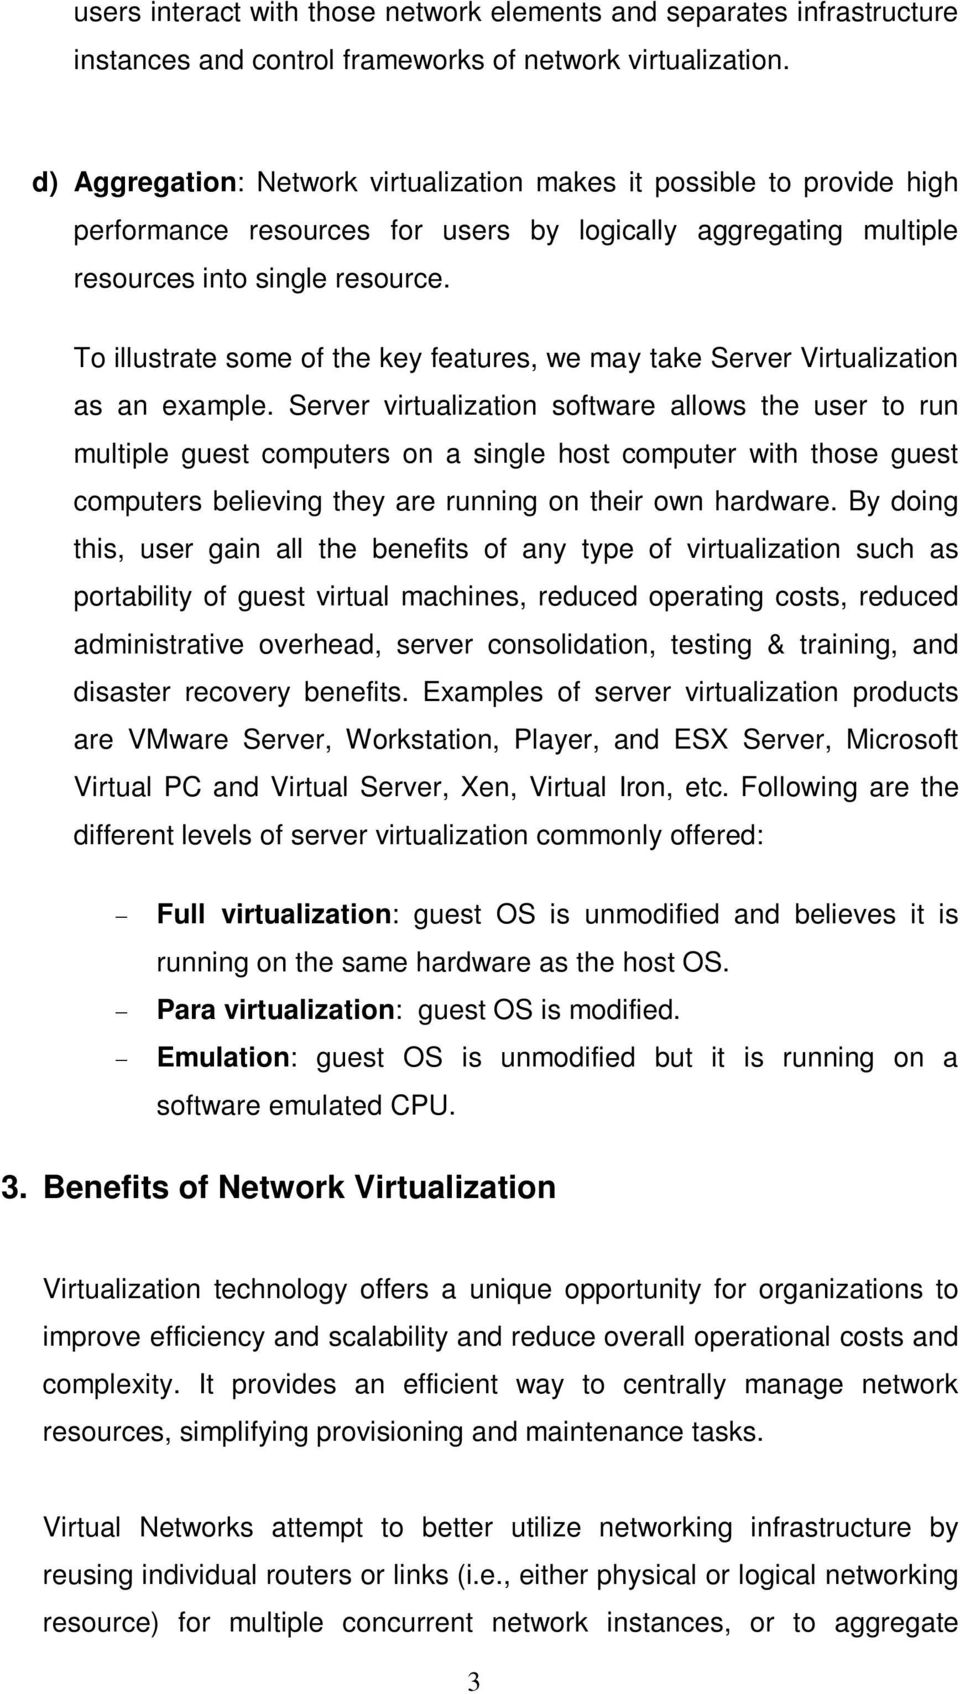 To illustrate some of the key features, we may take Server Virtualization as an example.